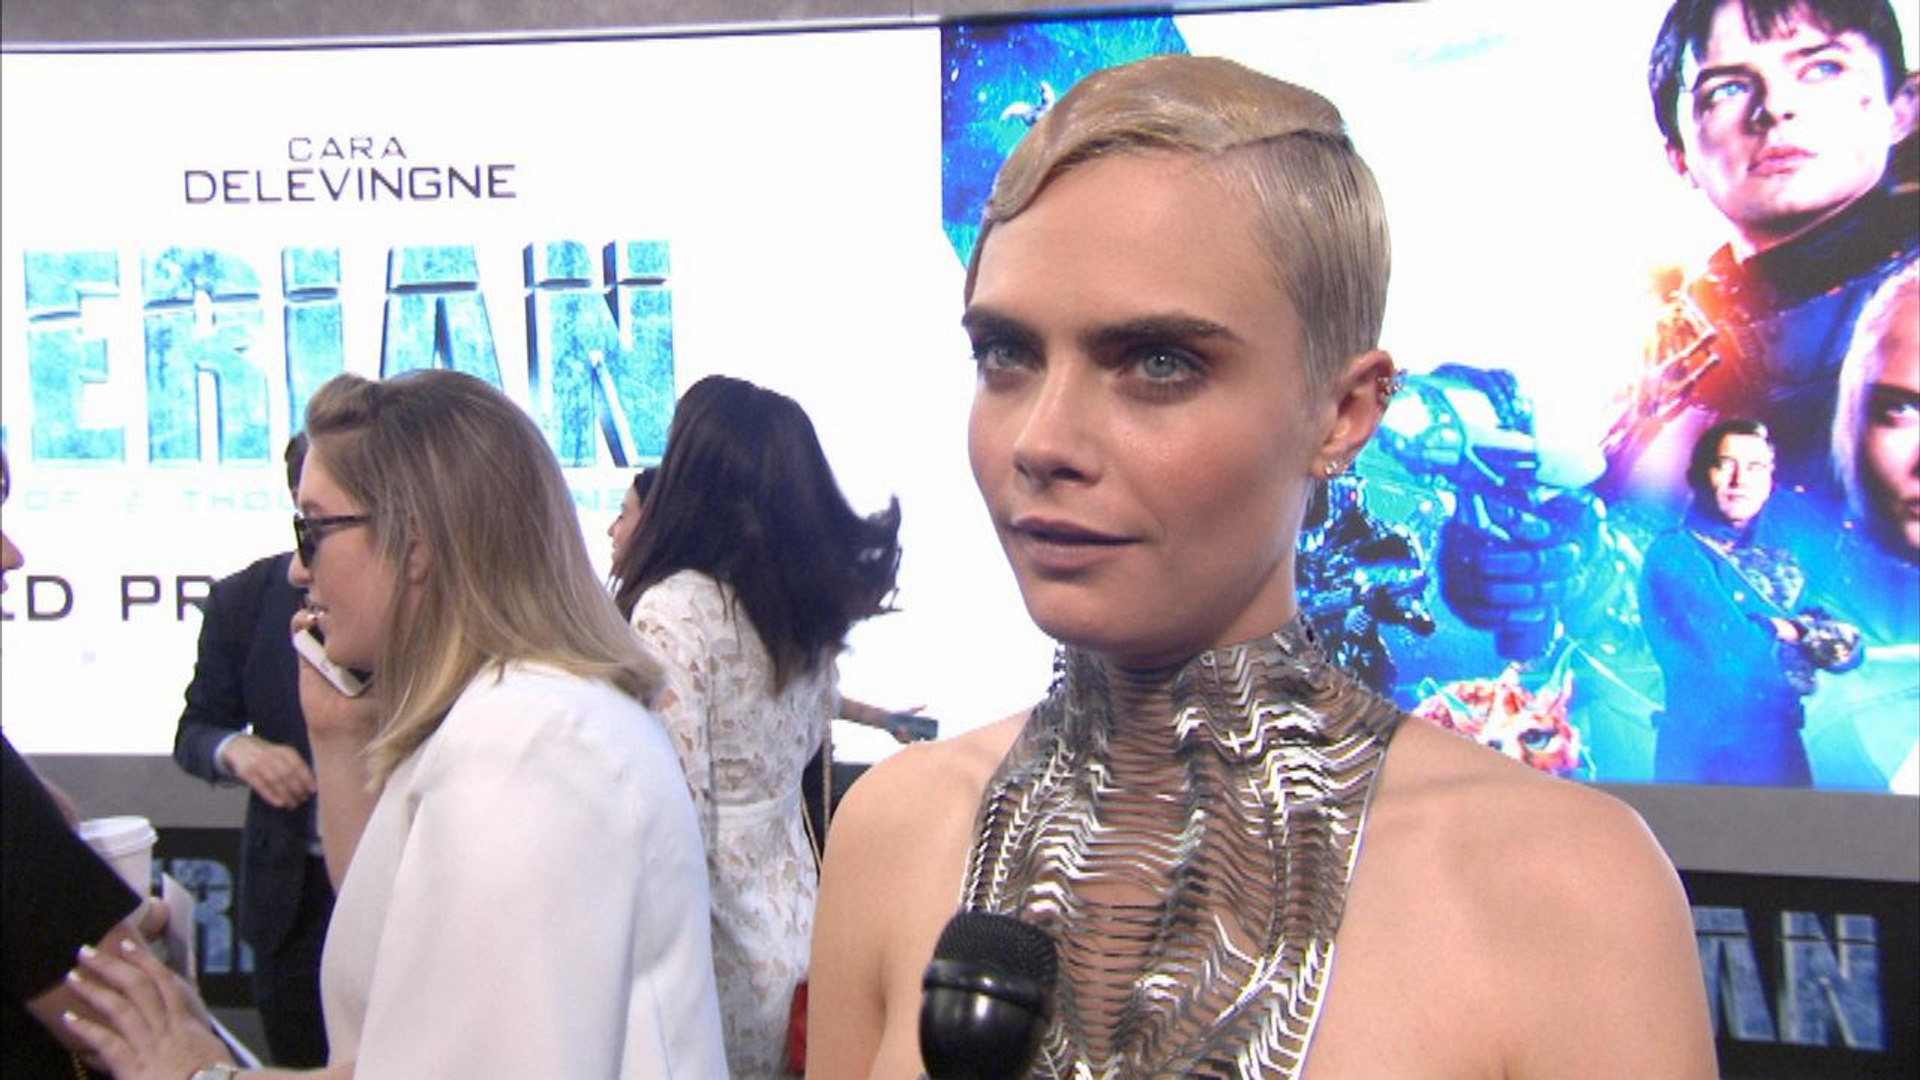 'Valerian and the City of a Thousand Planets' Premiere: A Stunning Cara Delevingne